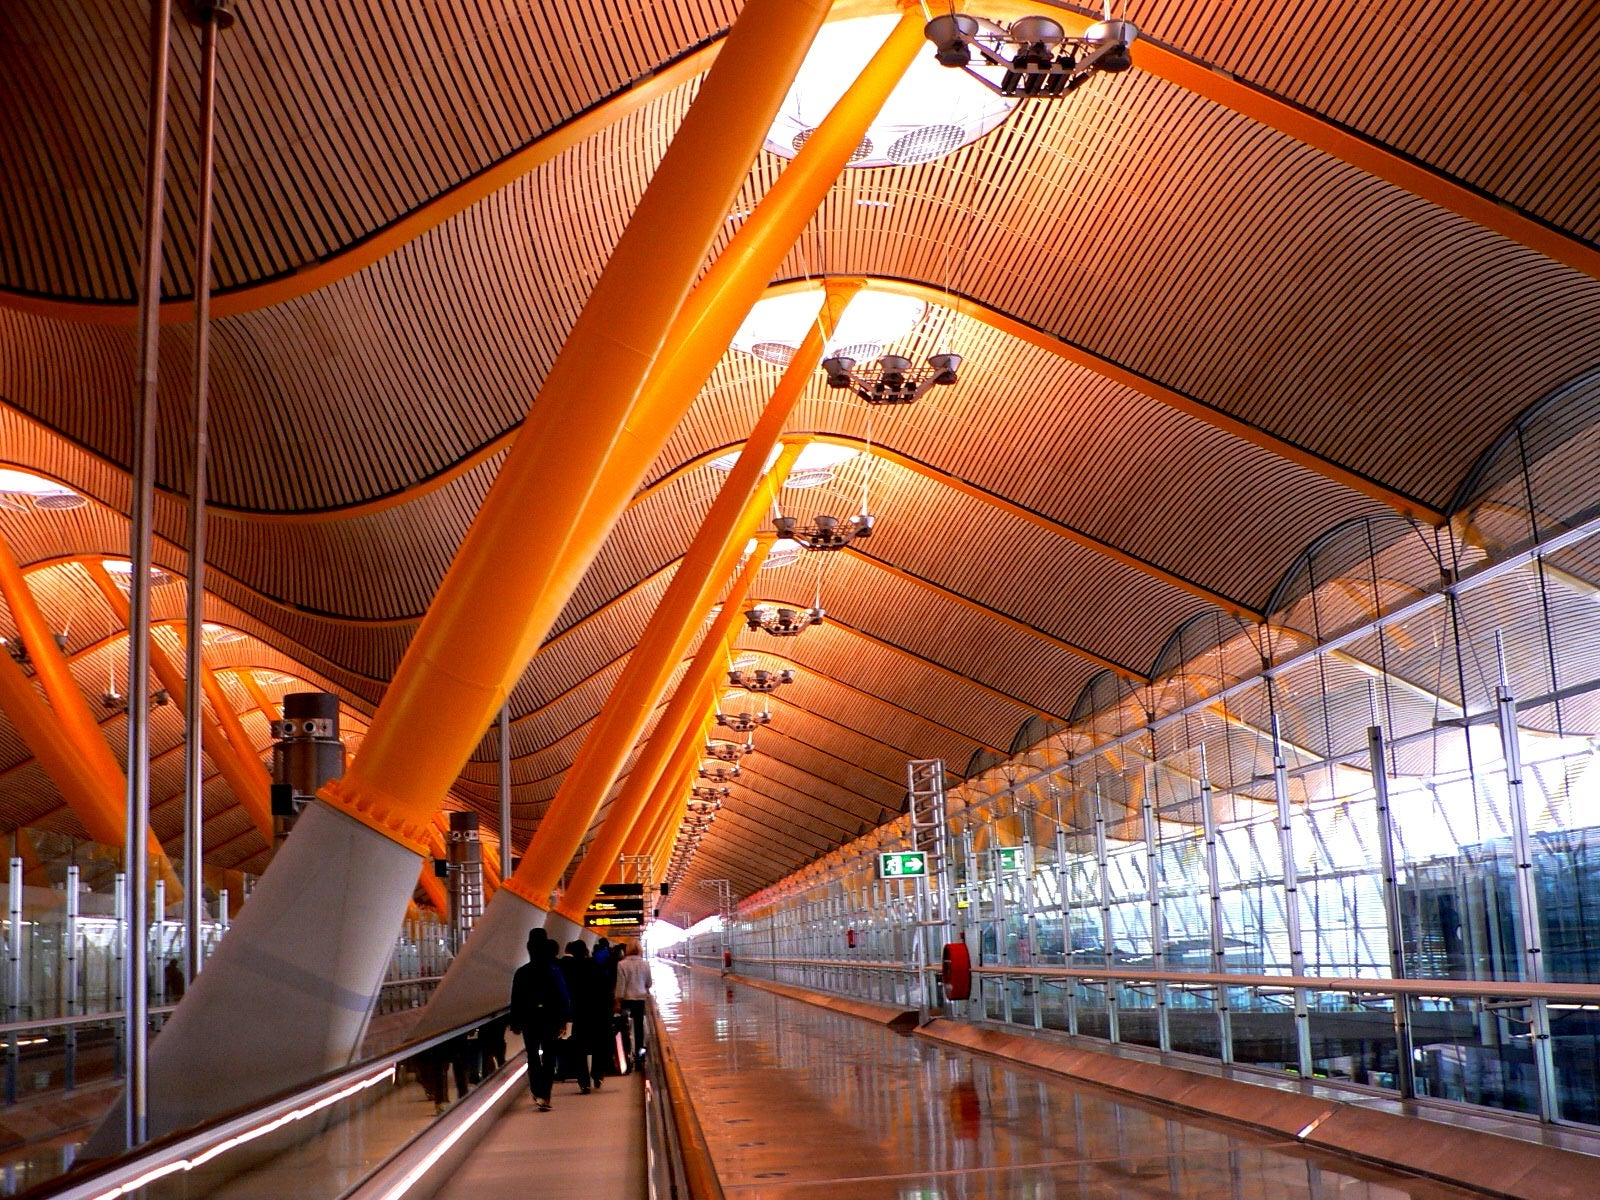 Long layover in Madrid? Here's what you need to know - The Points Guy